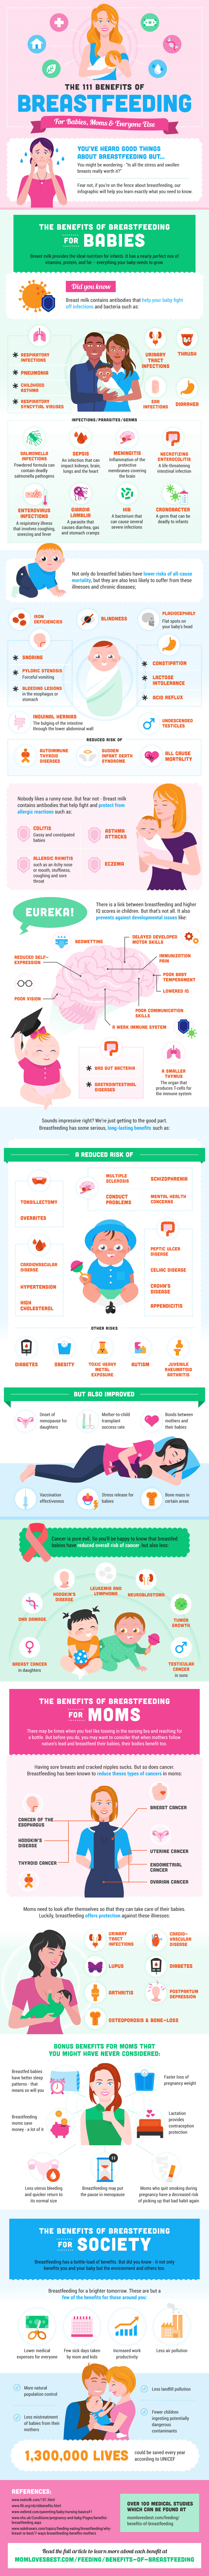 Benefits of Breastfeeding Infographic courtesy of  MomLovesBest.com